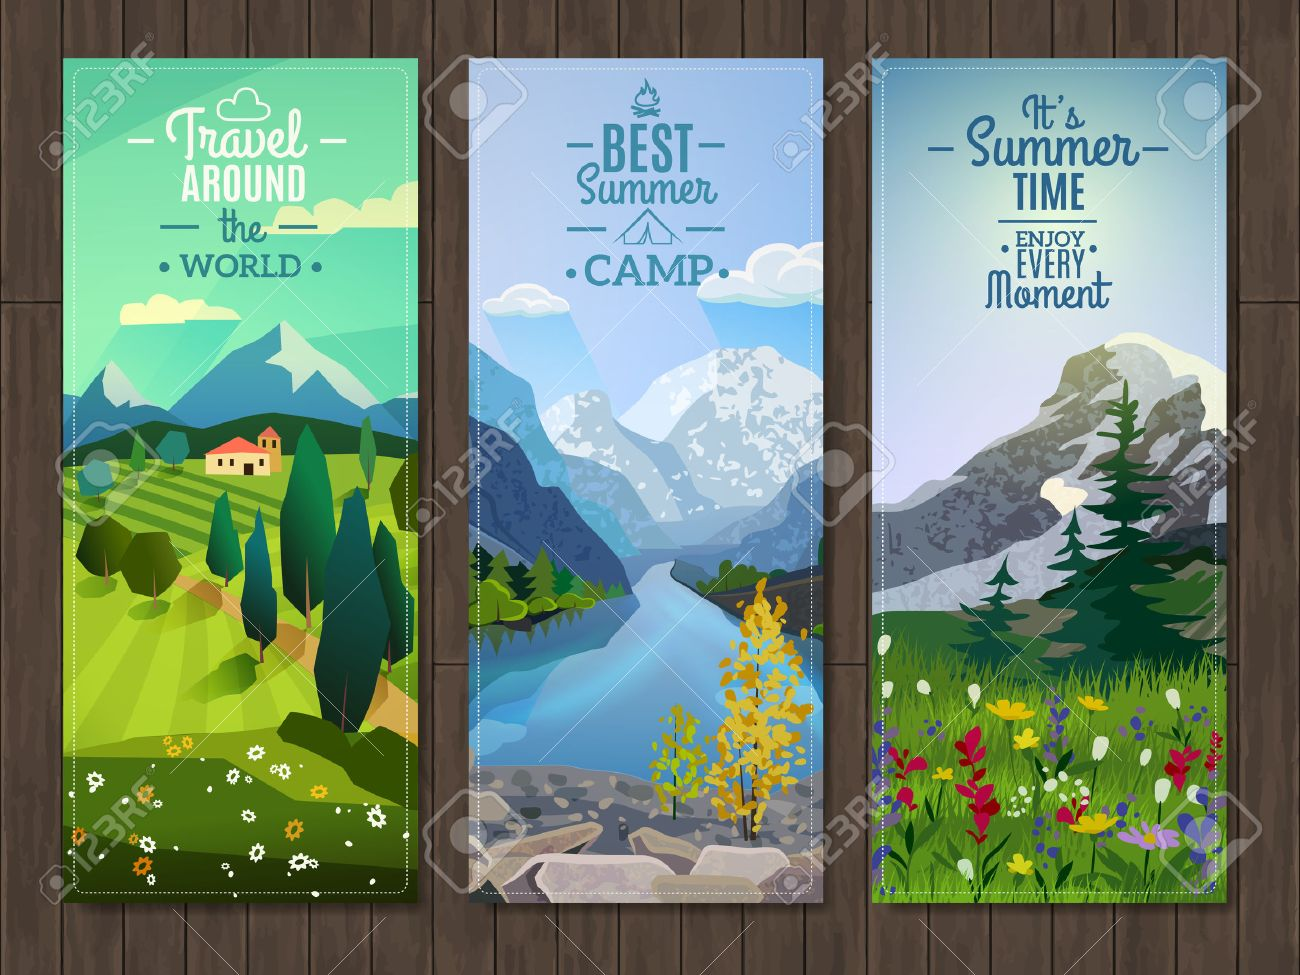 Best Active Summer Vacation Destinations Travel Agency Advertisement 3 Vertical Landscape Banners Set Abstract Isolated Vector